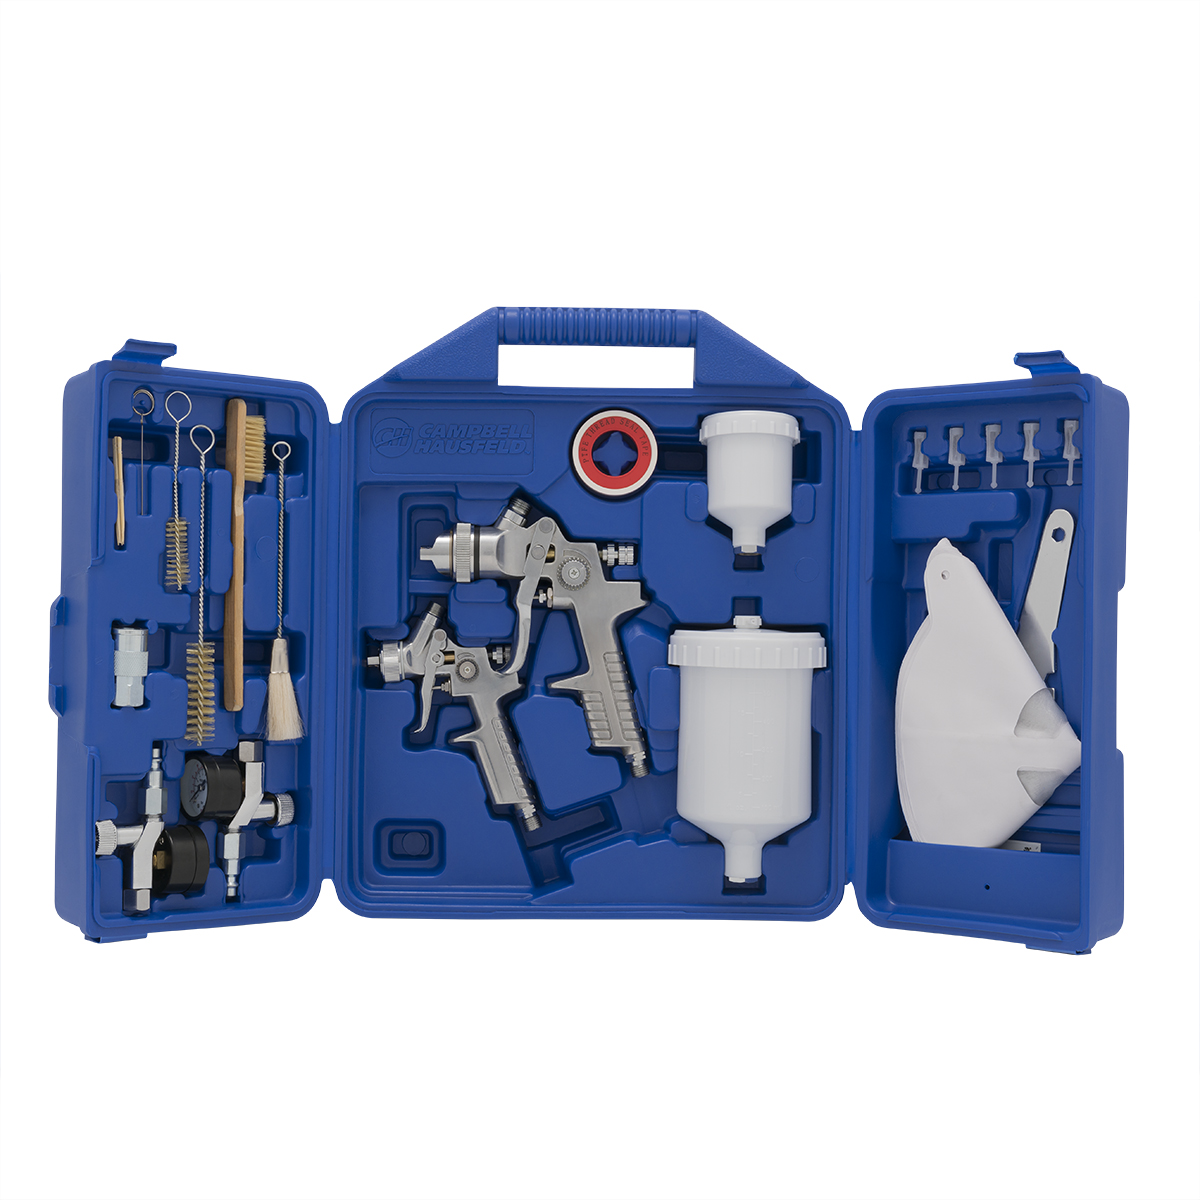 Gravity-Feed Spray Gun Kit (CHK005CCAV)